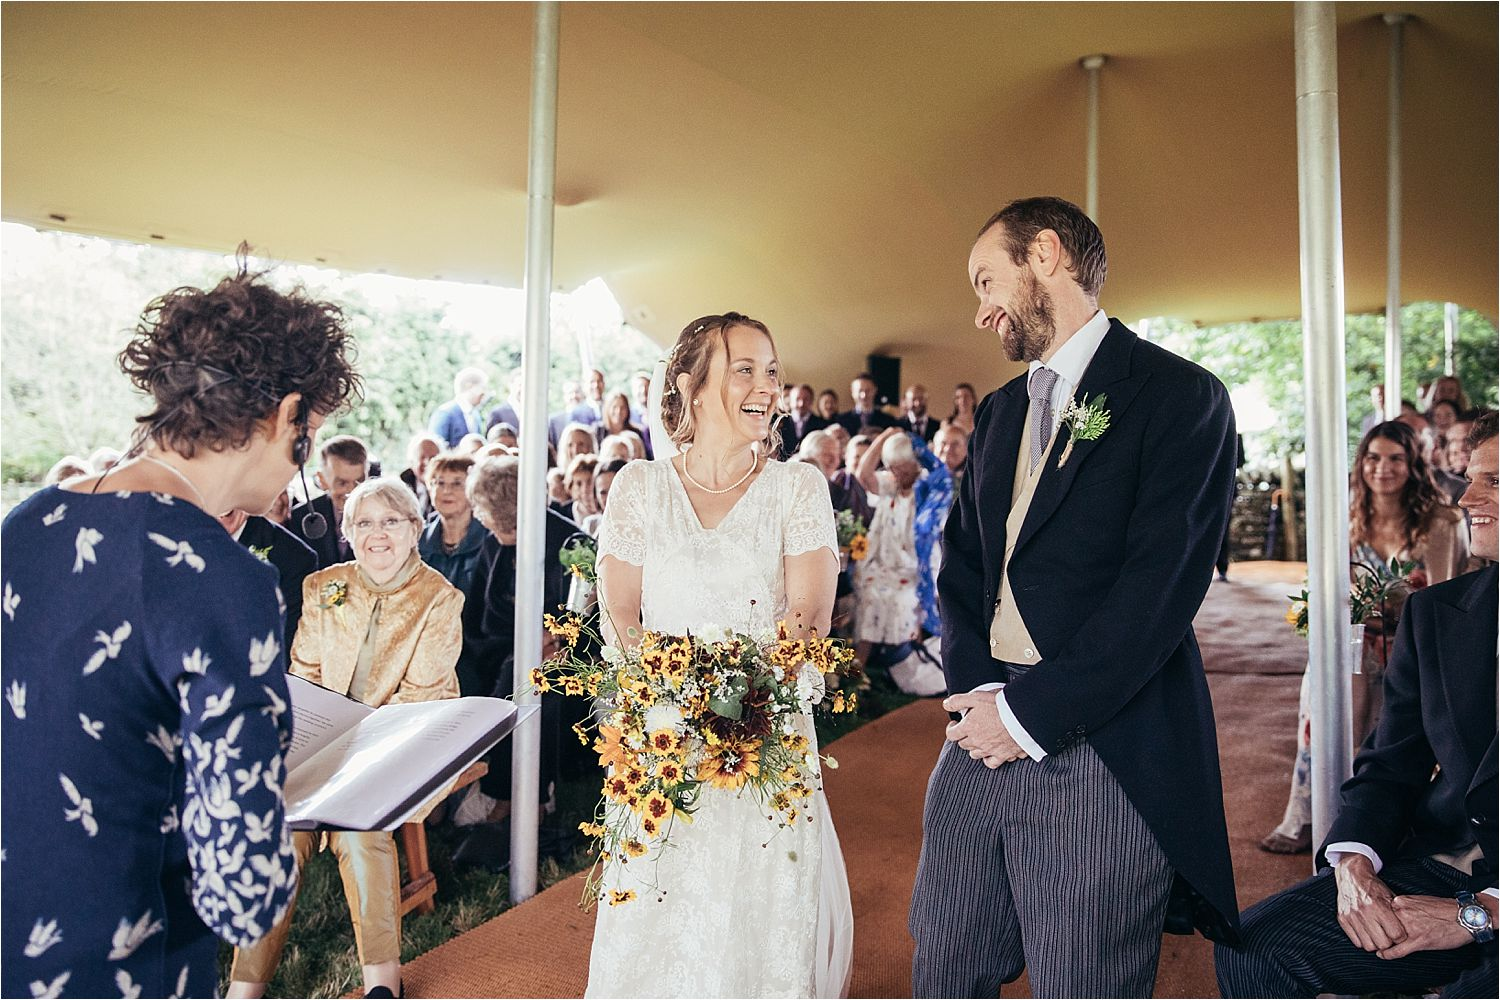 Bride and groom during ceremony in Big Chief Tipi at rural Manchester wedding